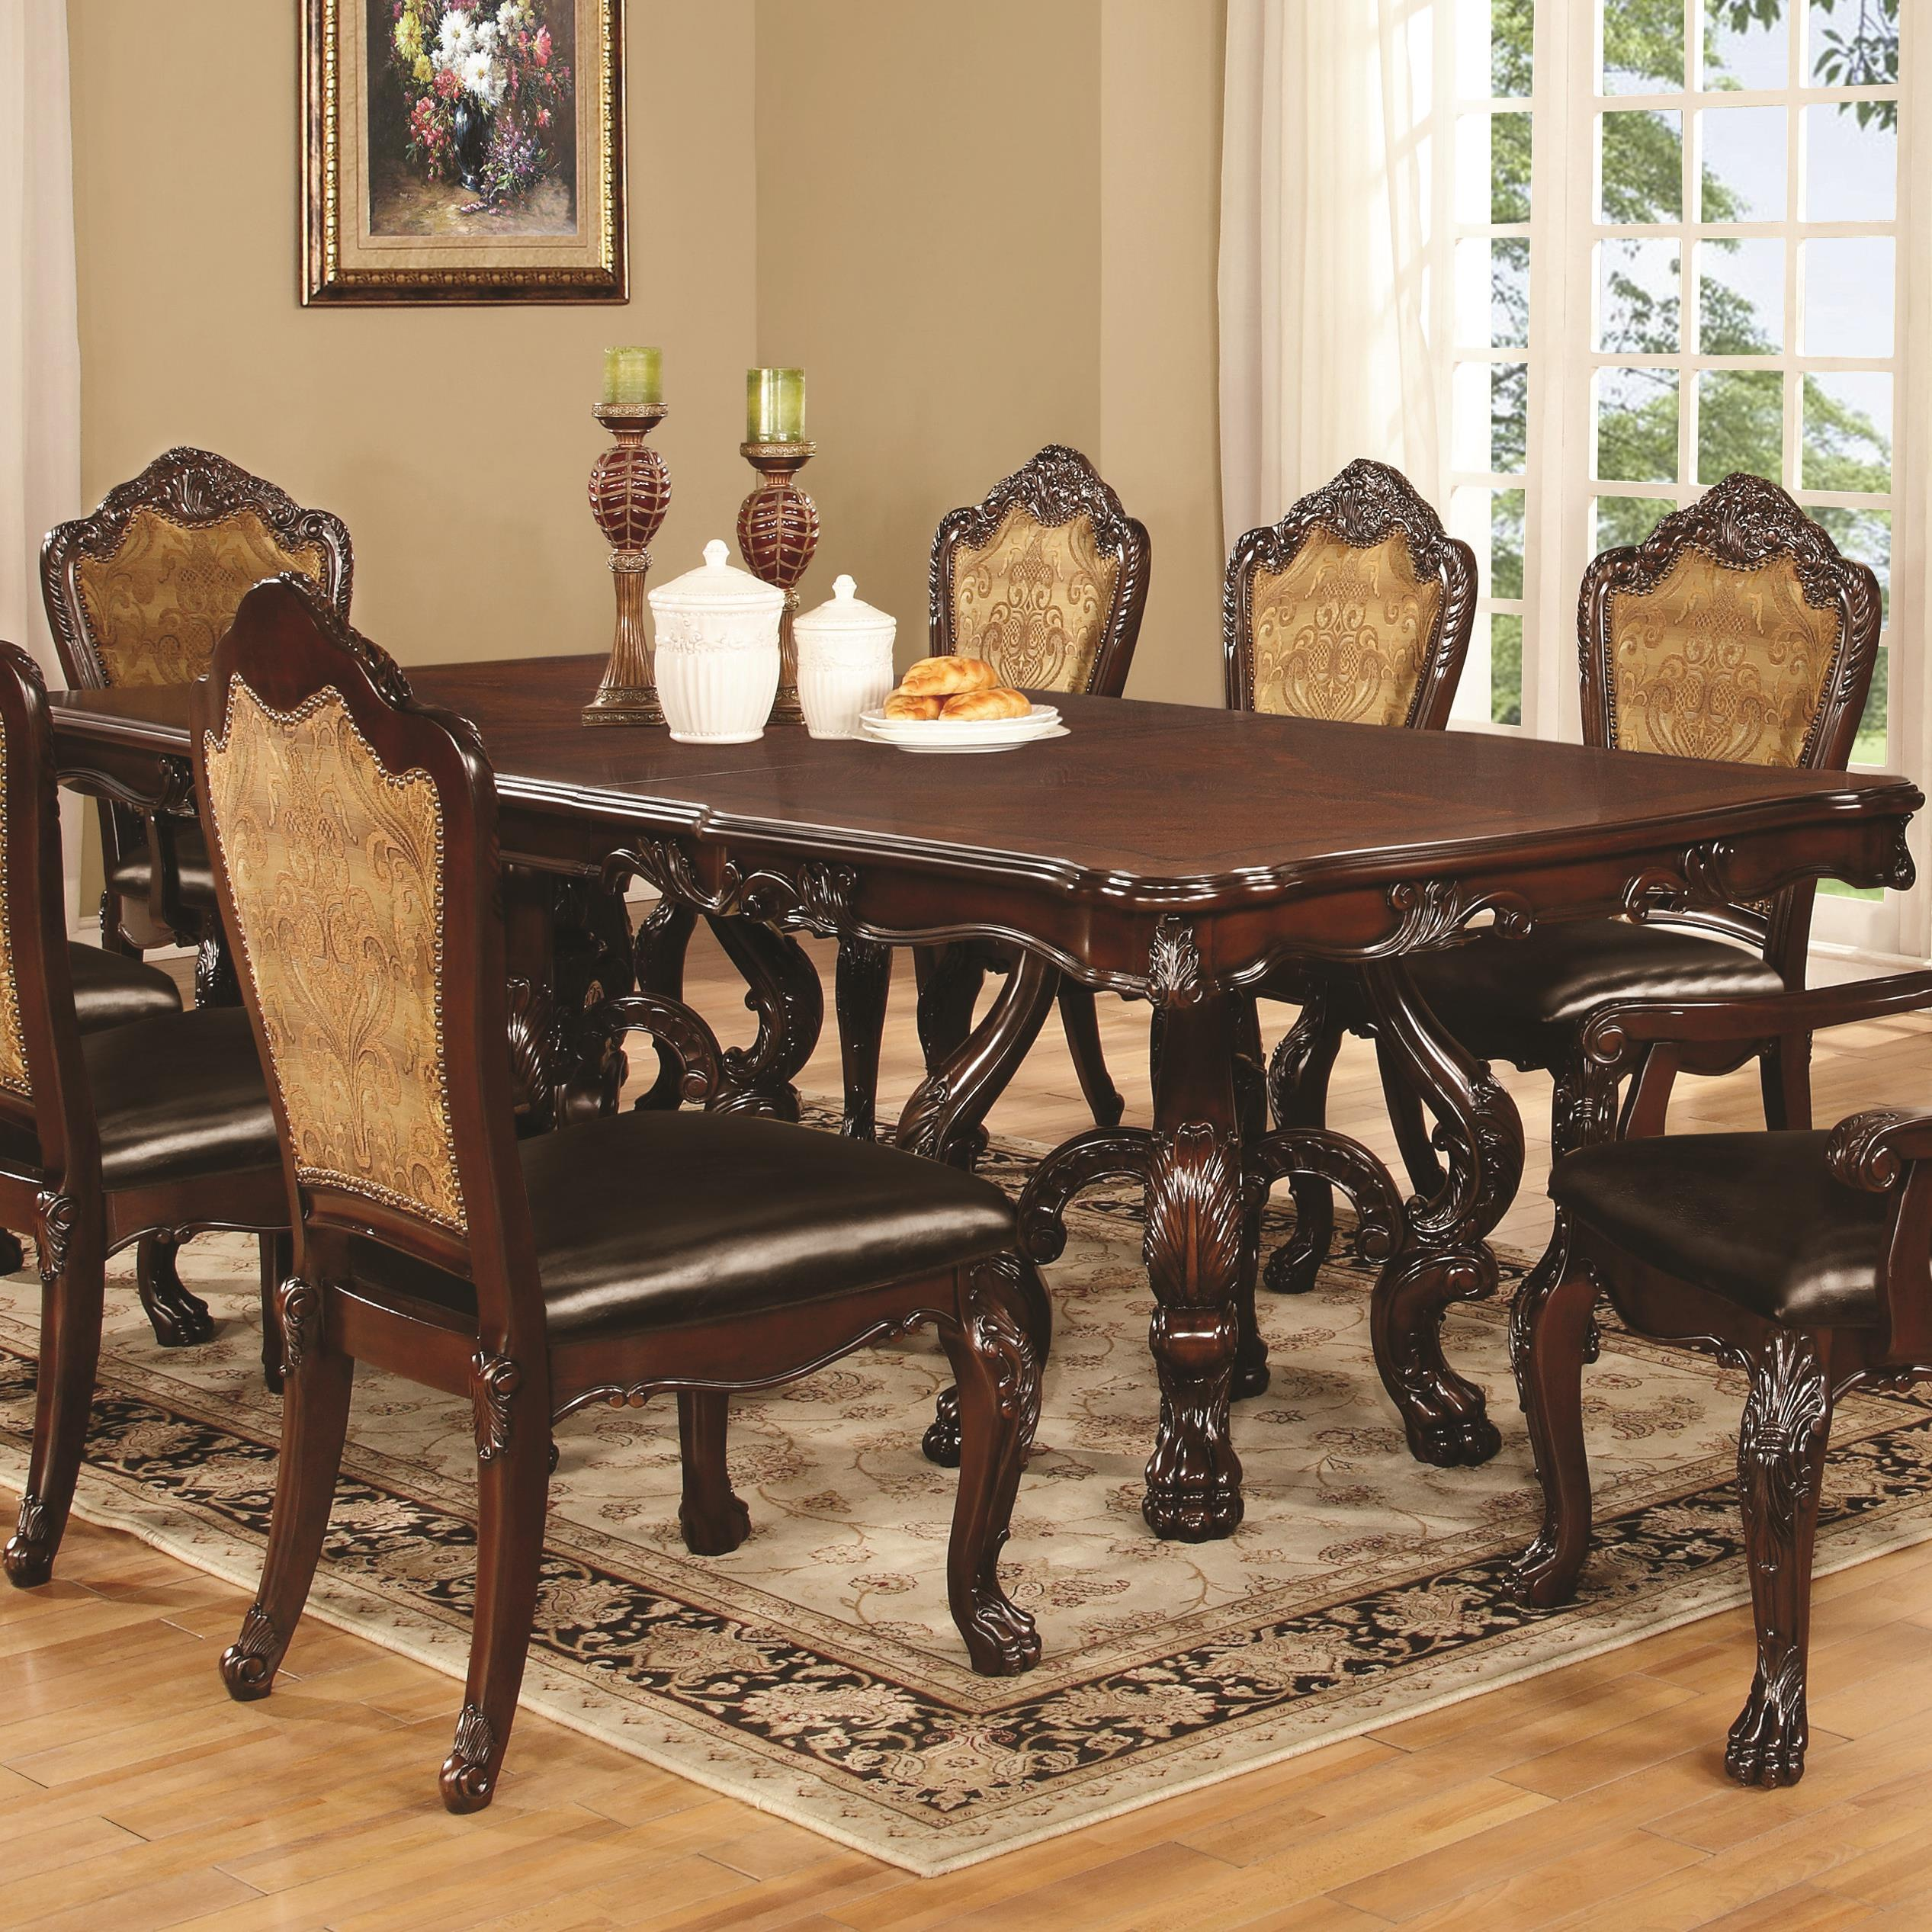 Coaster Benbrook Dining Table with Claw Feet - Item Number: 105511